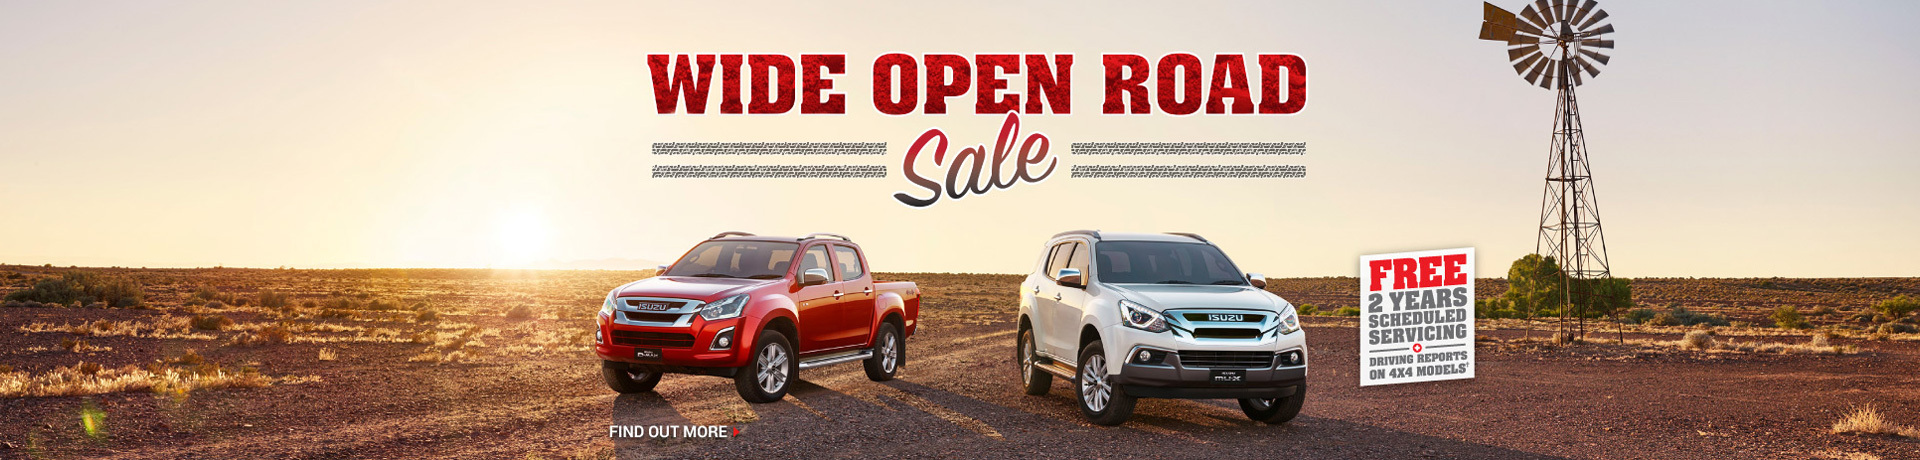 Isuzu - National Offer - Free 2 Year Scheduled Servicing + Driving Reports on 4X